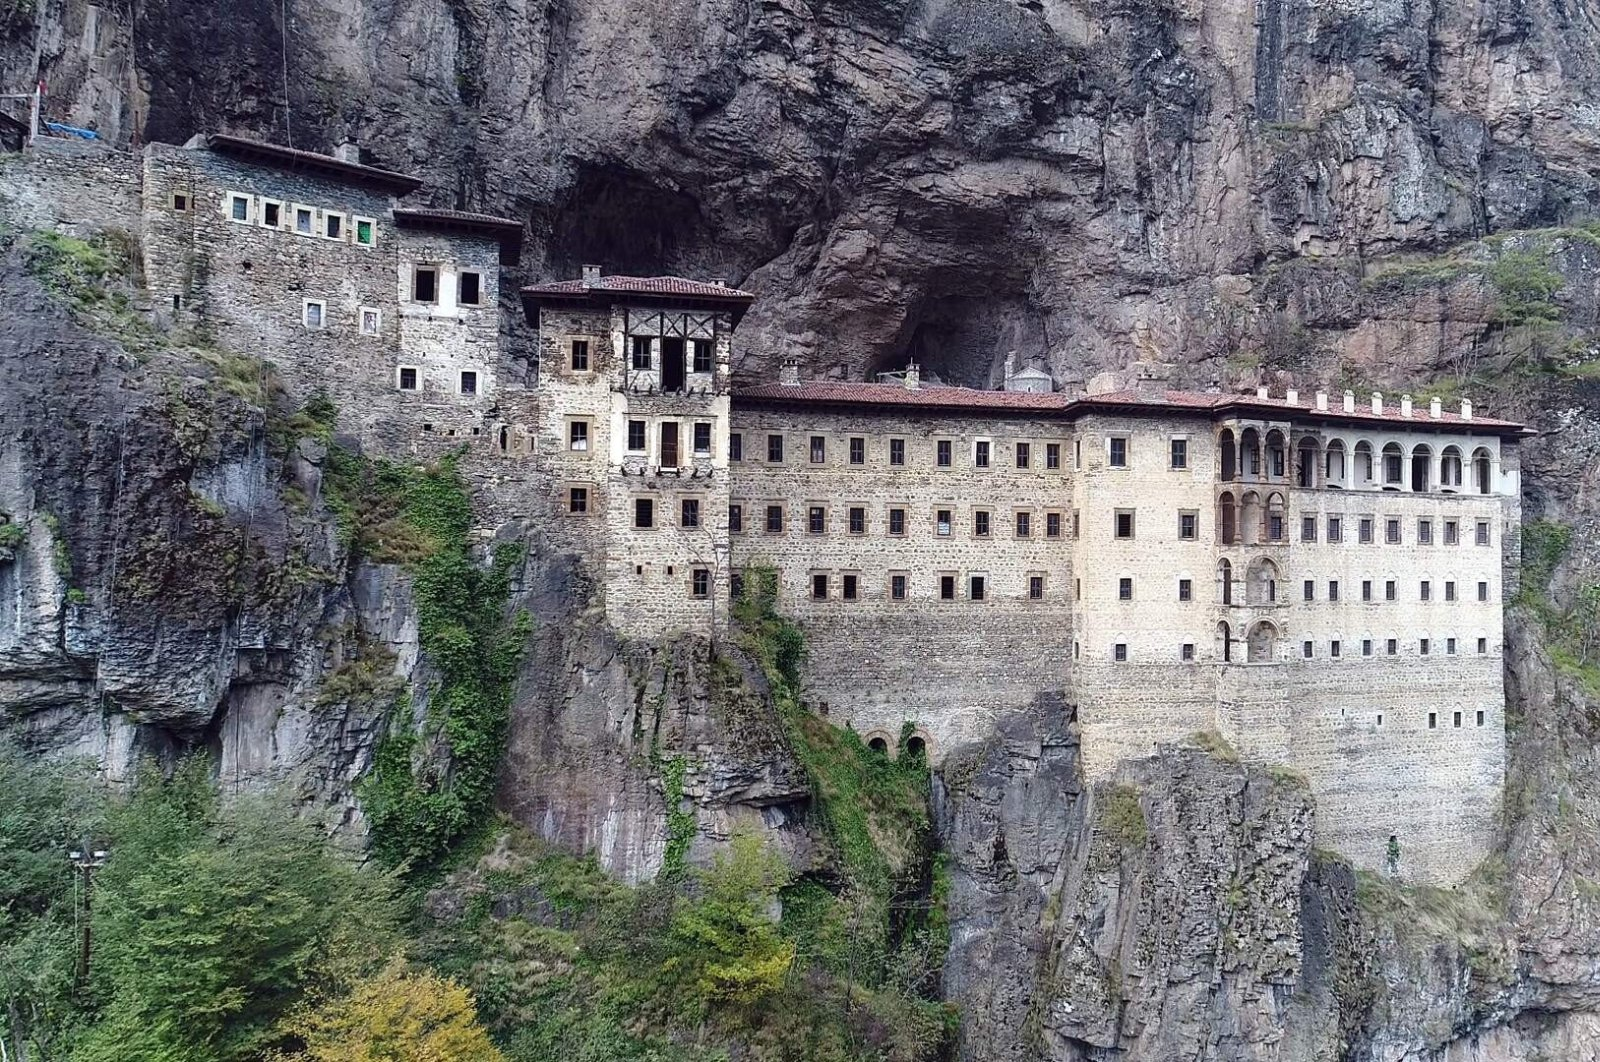 Sümela Monastery is carved out of rocks in a wooded area 300 meters above the Altındere Valley, Trabzon. (İHA PHOTO)